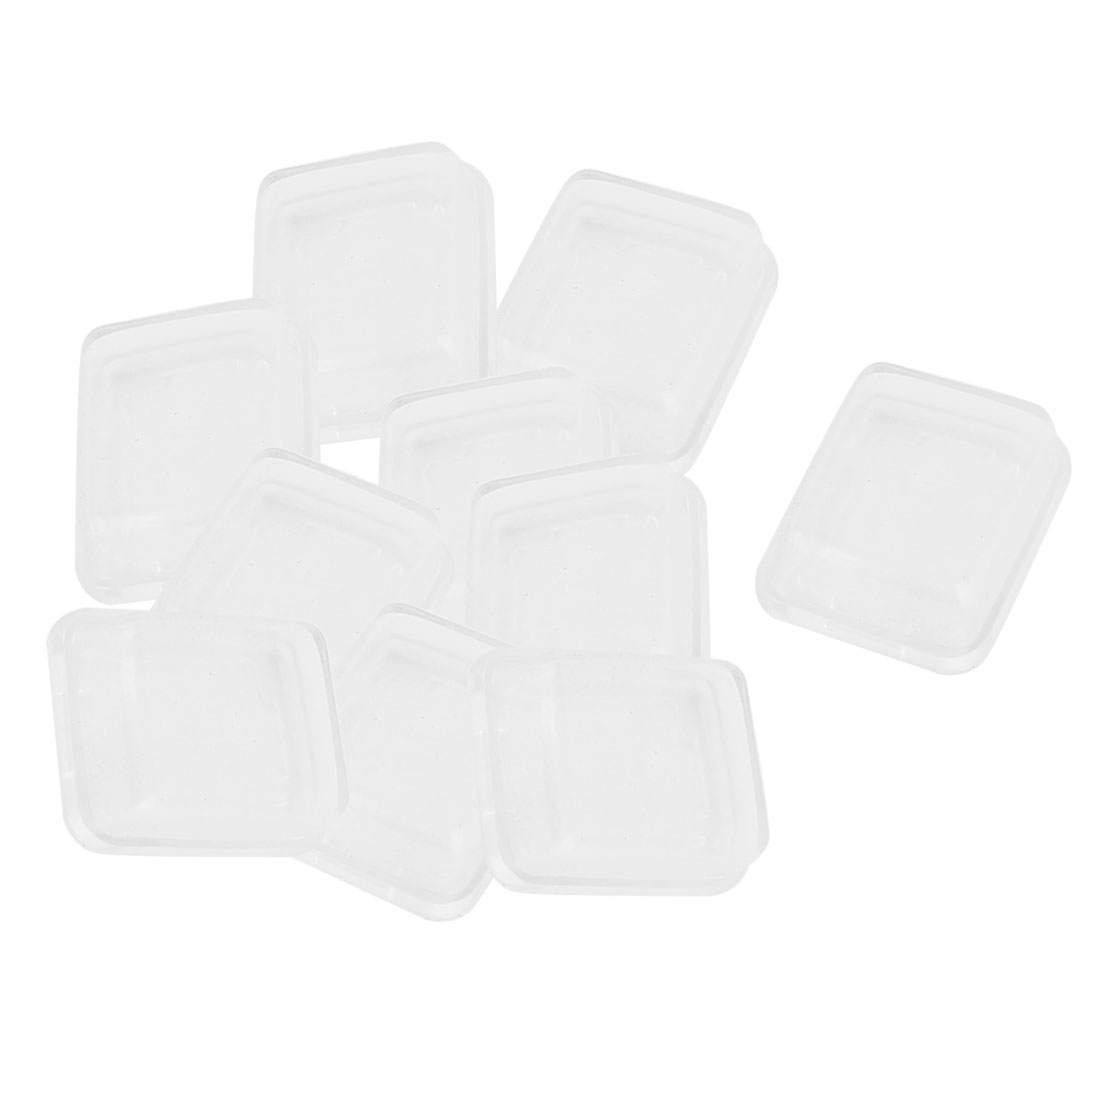 10 Pcs White Clear Silicone Waterproof Rocker Switch Protect Cover Rectangle Cap